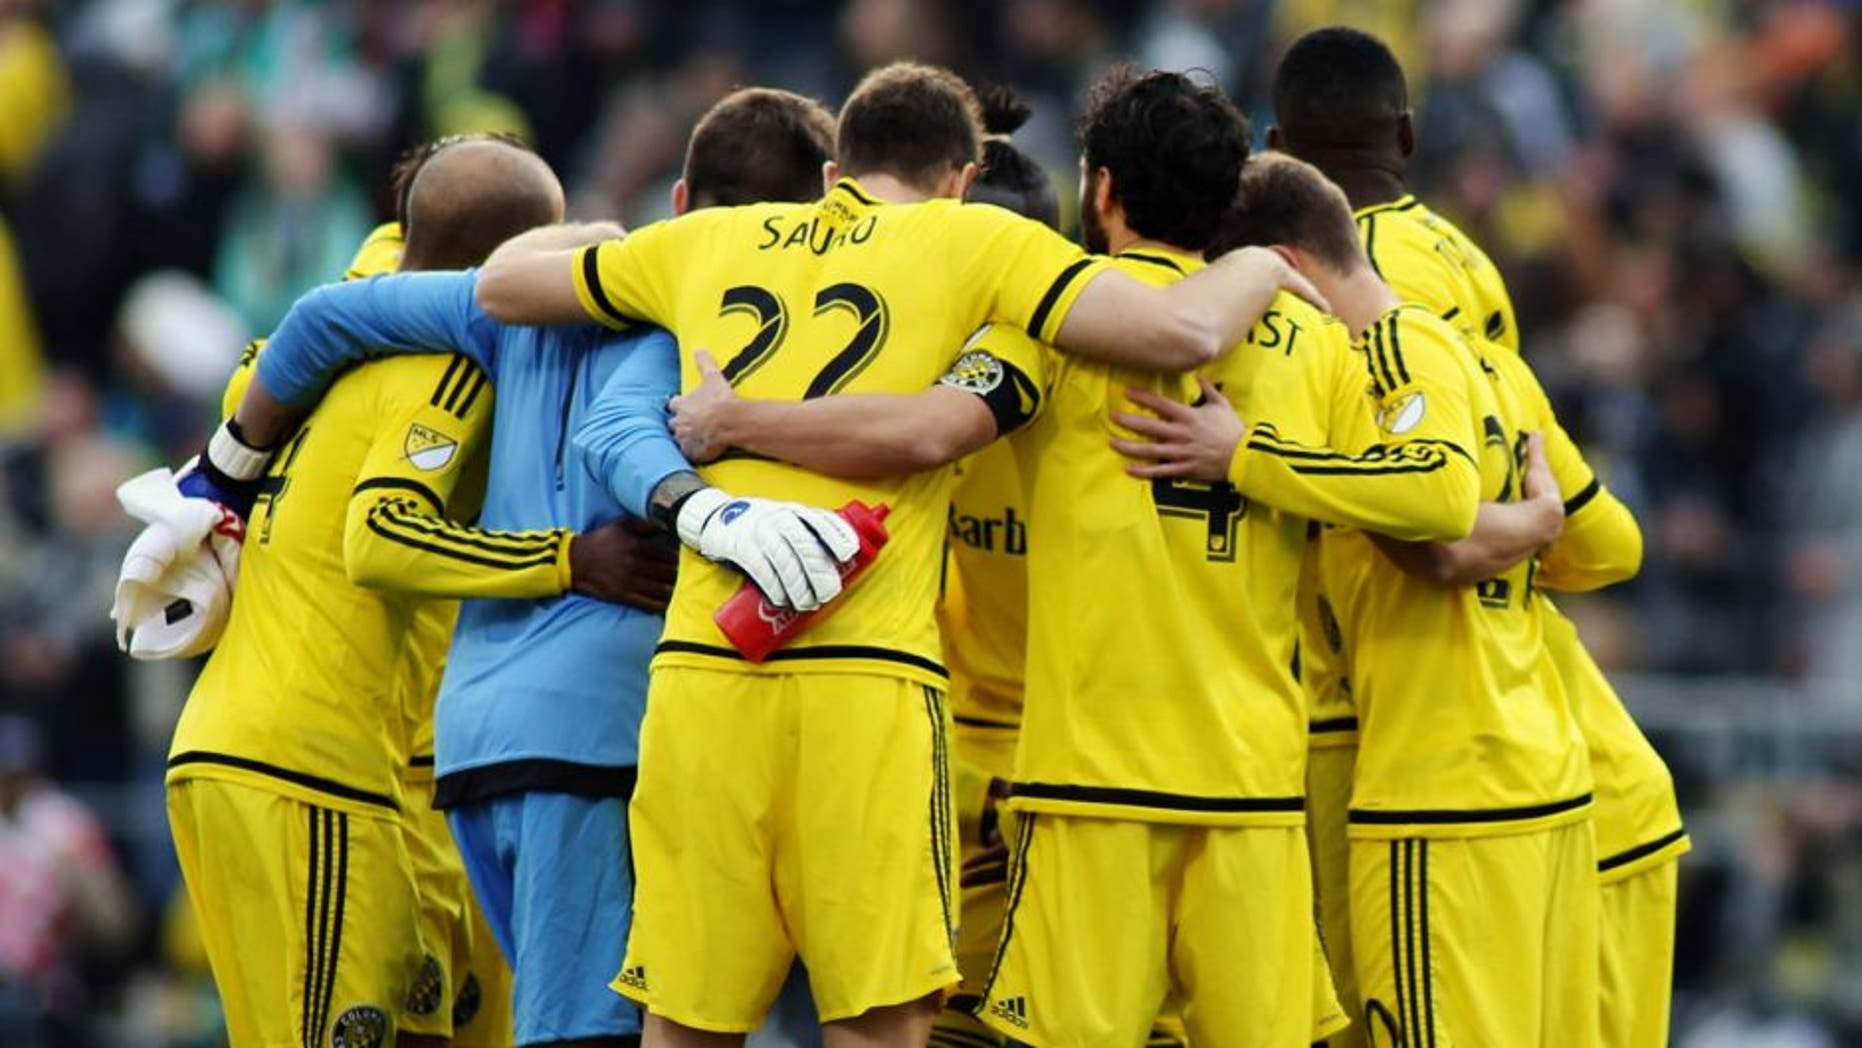 Dec 6, 2015; Columbus, OH, USA; Columbus Crew players huddle before during the first half in the 2015 MLS Cup championship game against the Portland Timbers at MAPFRE Stadium. Mandatory Credit: Trevor Ruszkowksi-USA TODAY Sports